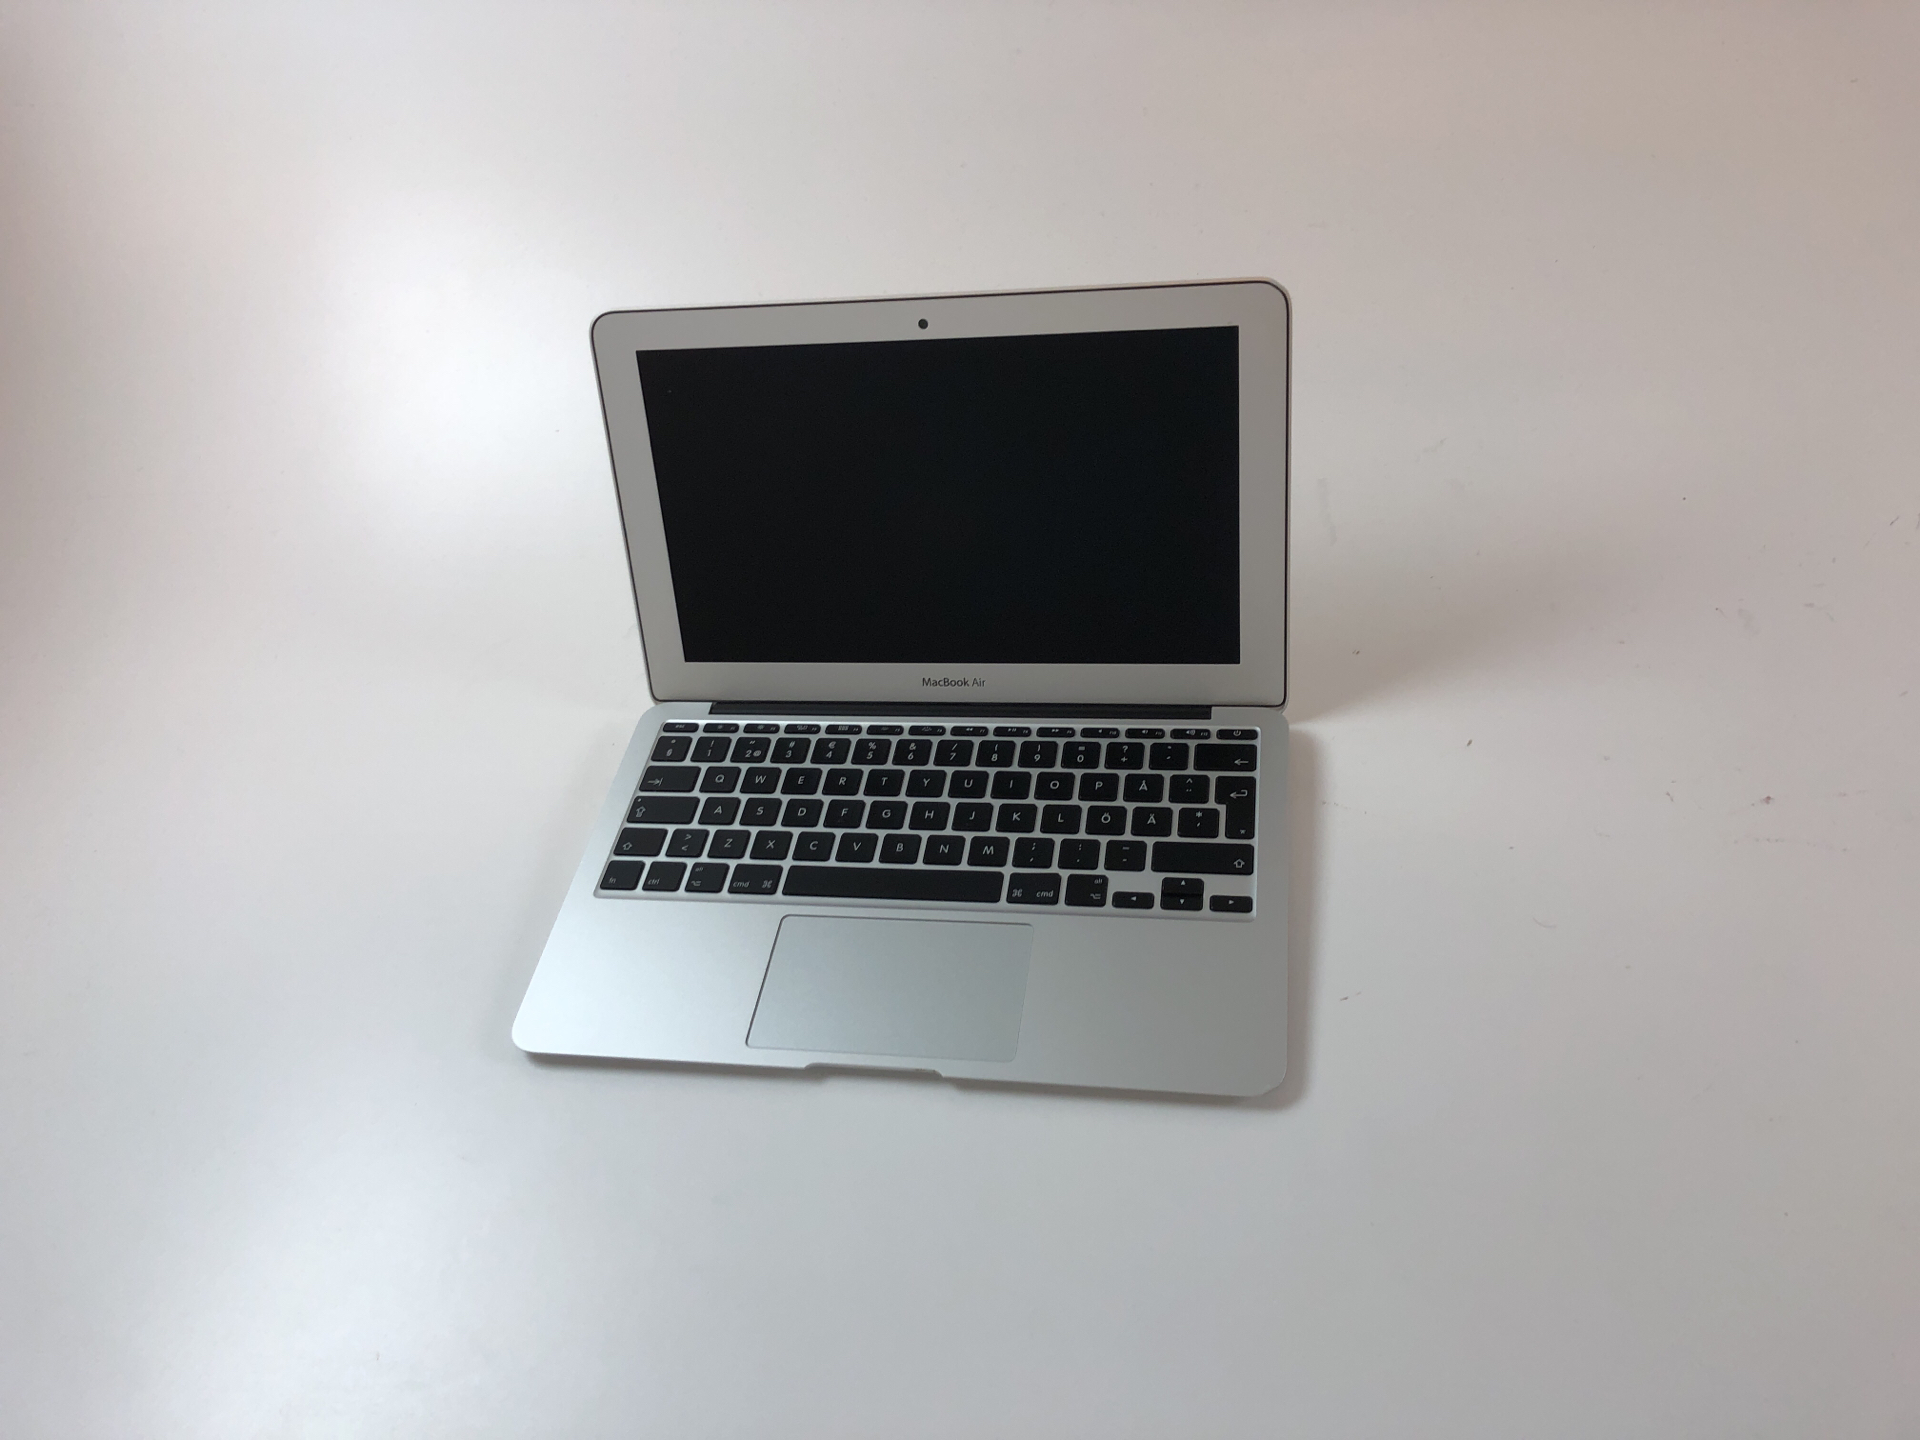 "MacBook Air 11"" Early 2015 (Intel Core i5 1.6 GHz 4 GB RAM 128 GB SSD), Intel Core i5 1.6 GHz, 4 GB RAM, 128 GB SSD, Kuva 1"